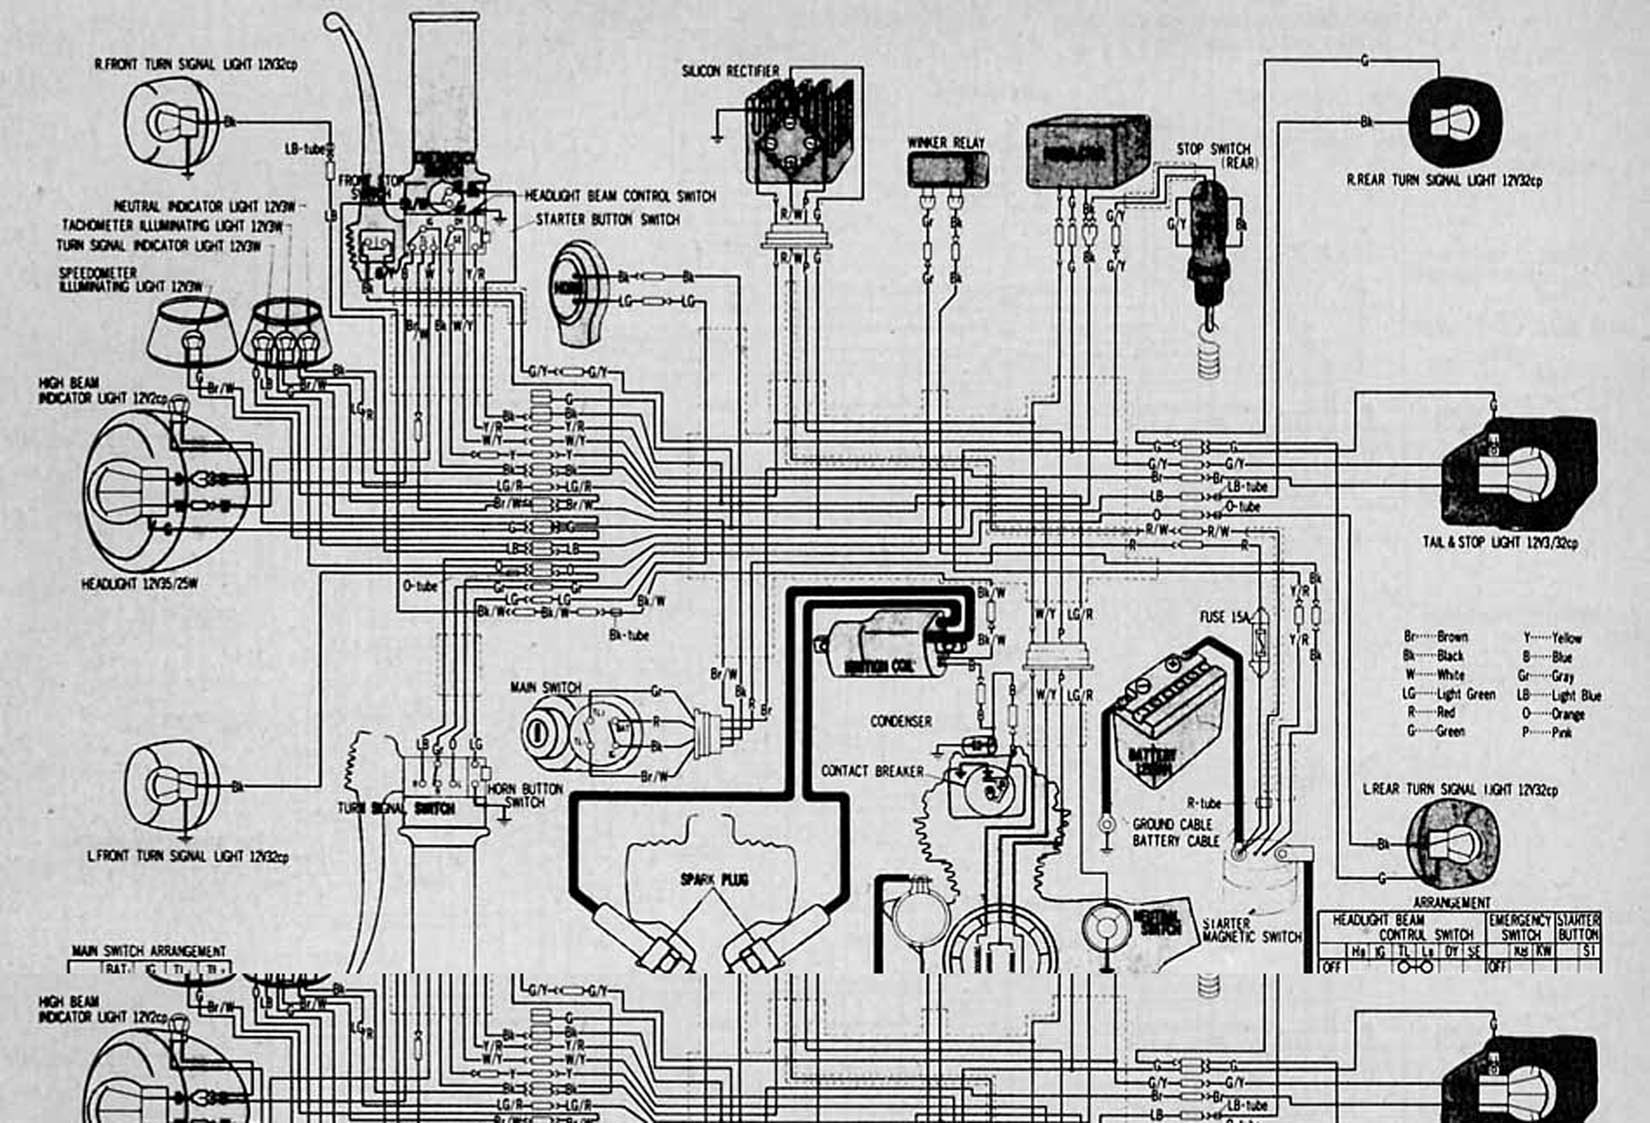 14529d1333841707 first bike cb200 honda cb cl200 electrical wiring diagram cb360 wiring diagram honda cl 350 wiring \u2022 wiring diagrams j 1974 honda cb360 wiring diagram at bakdesigns.co